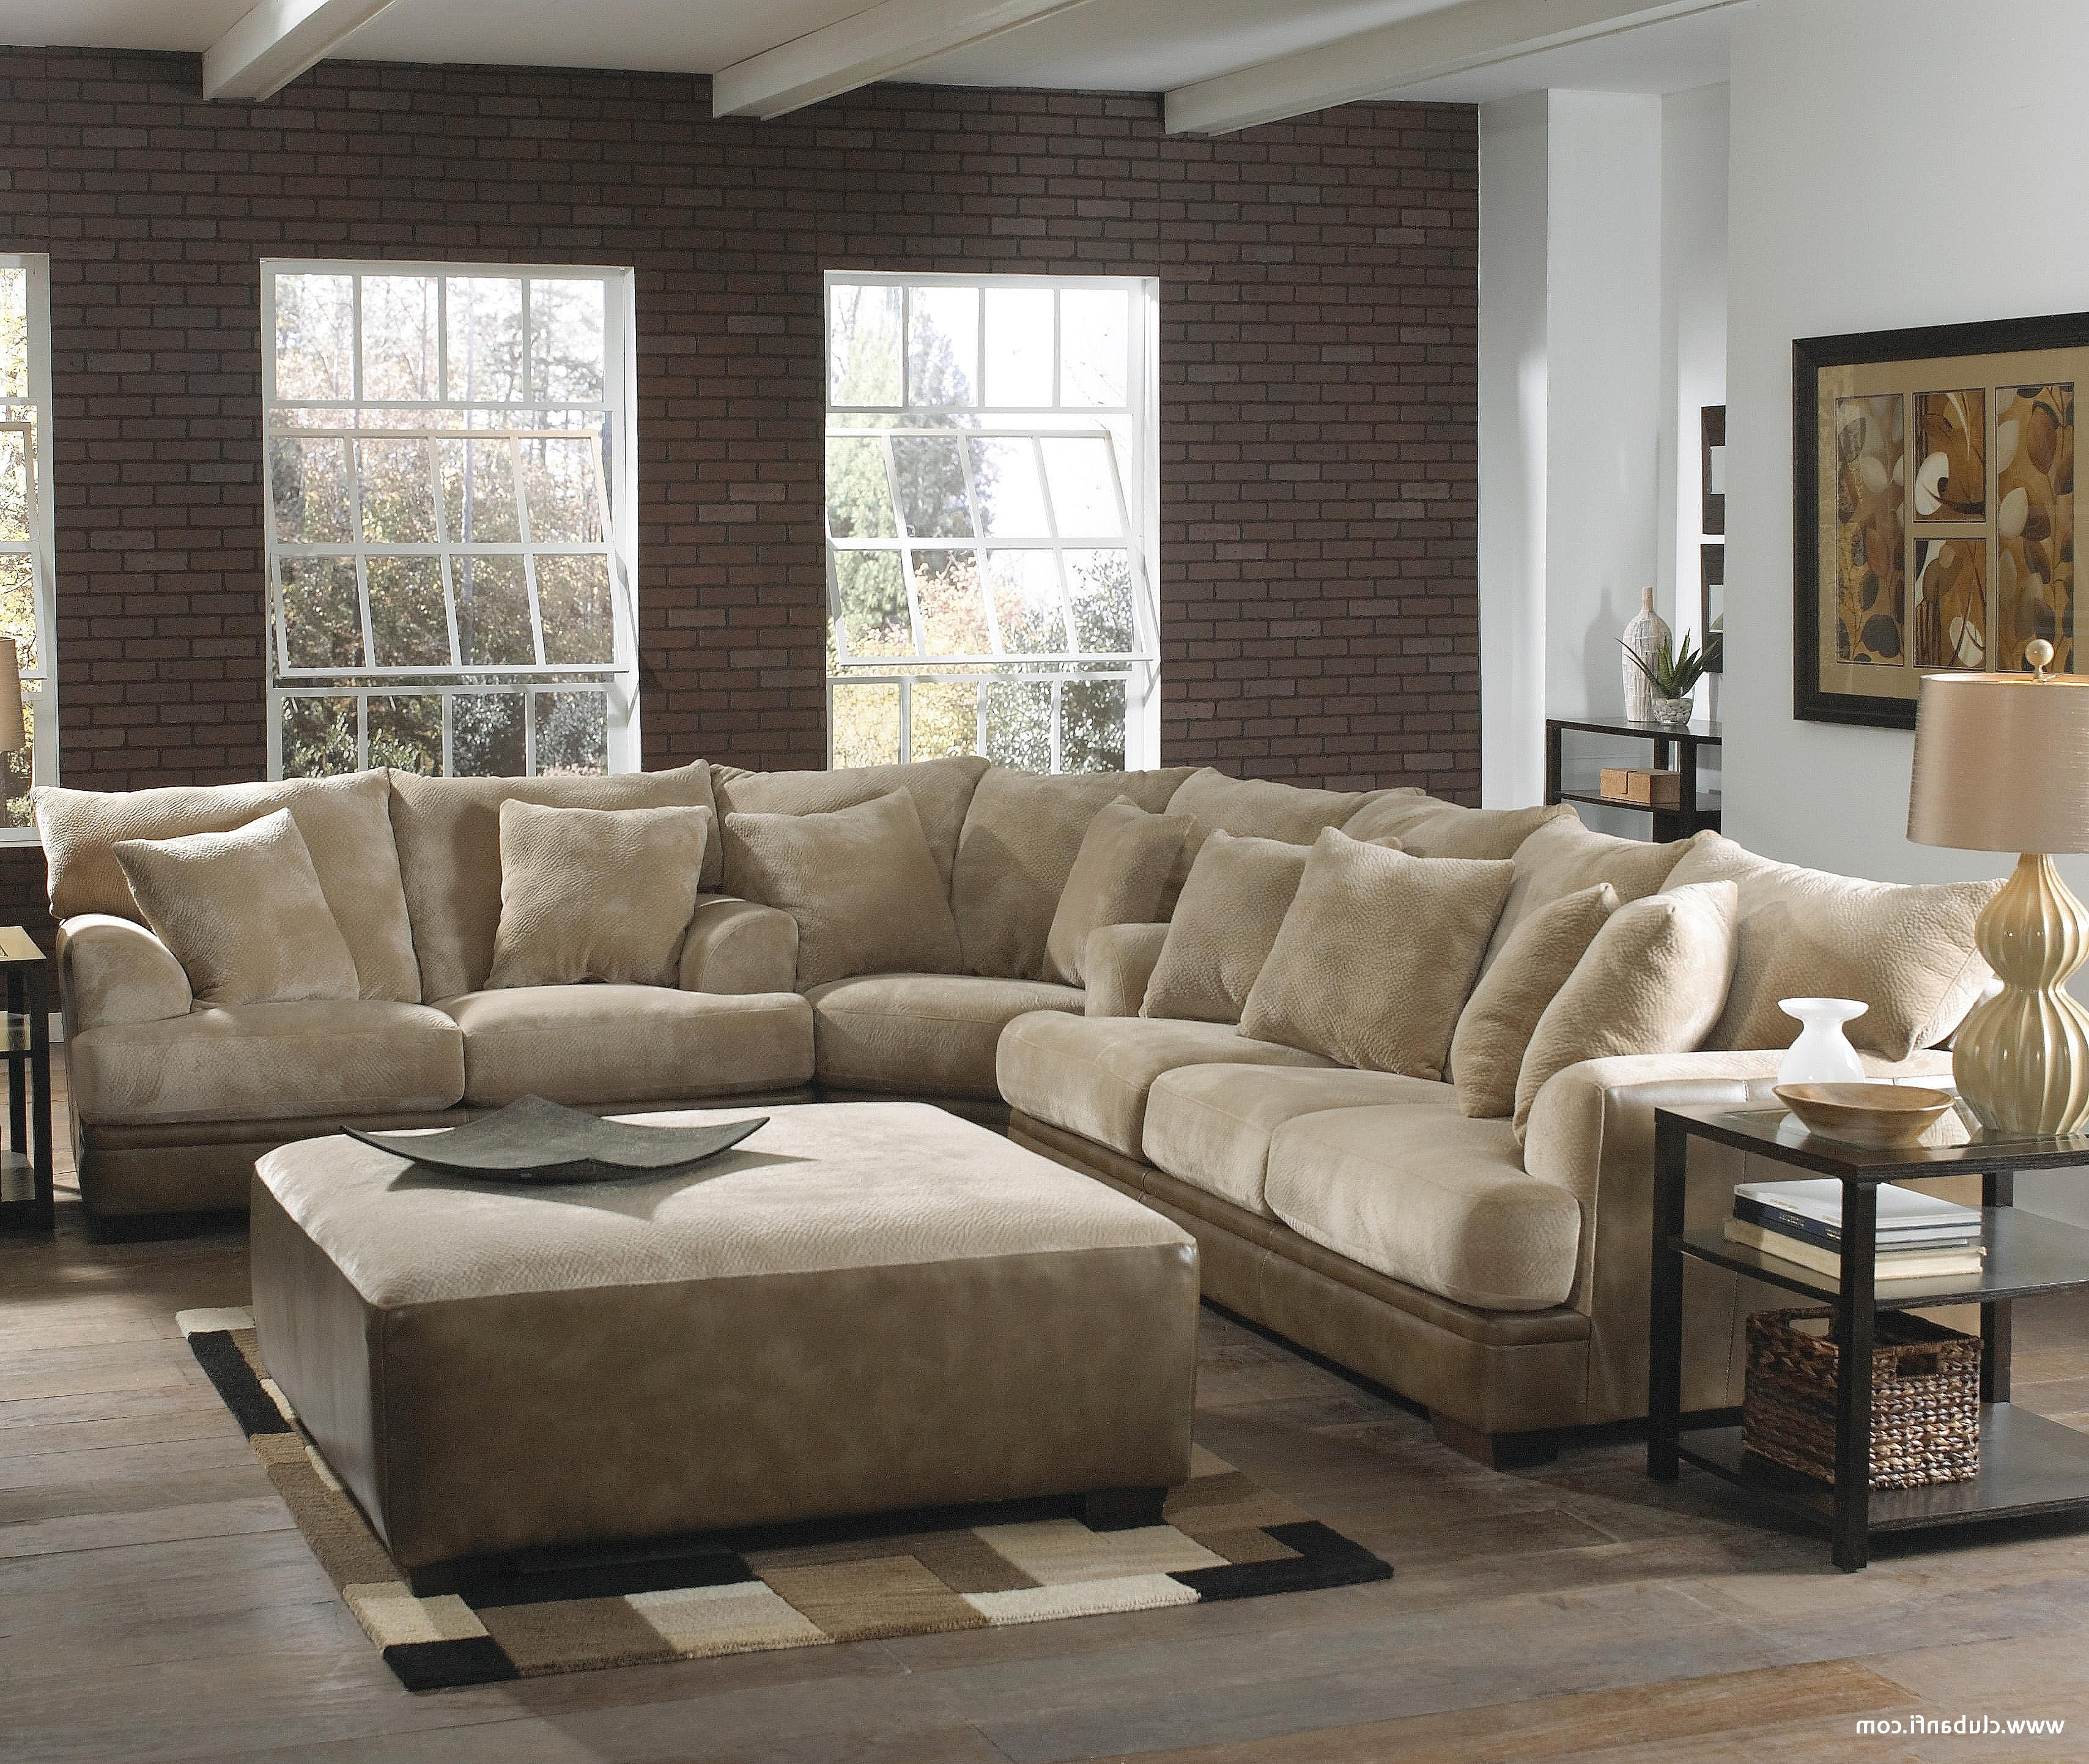 Plush Sectional Sofas Pertaining To Newest Picture 6 Of 34 – Plush Sectional Sofas Luxury Living Room Deep (View 11 of 20)